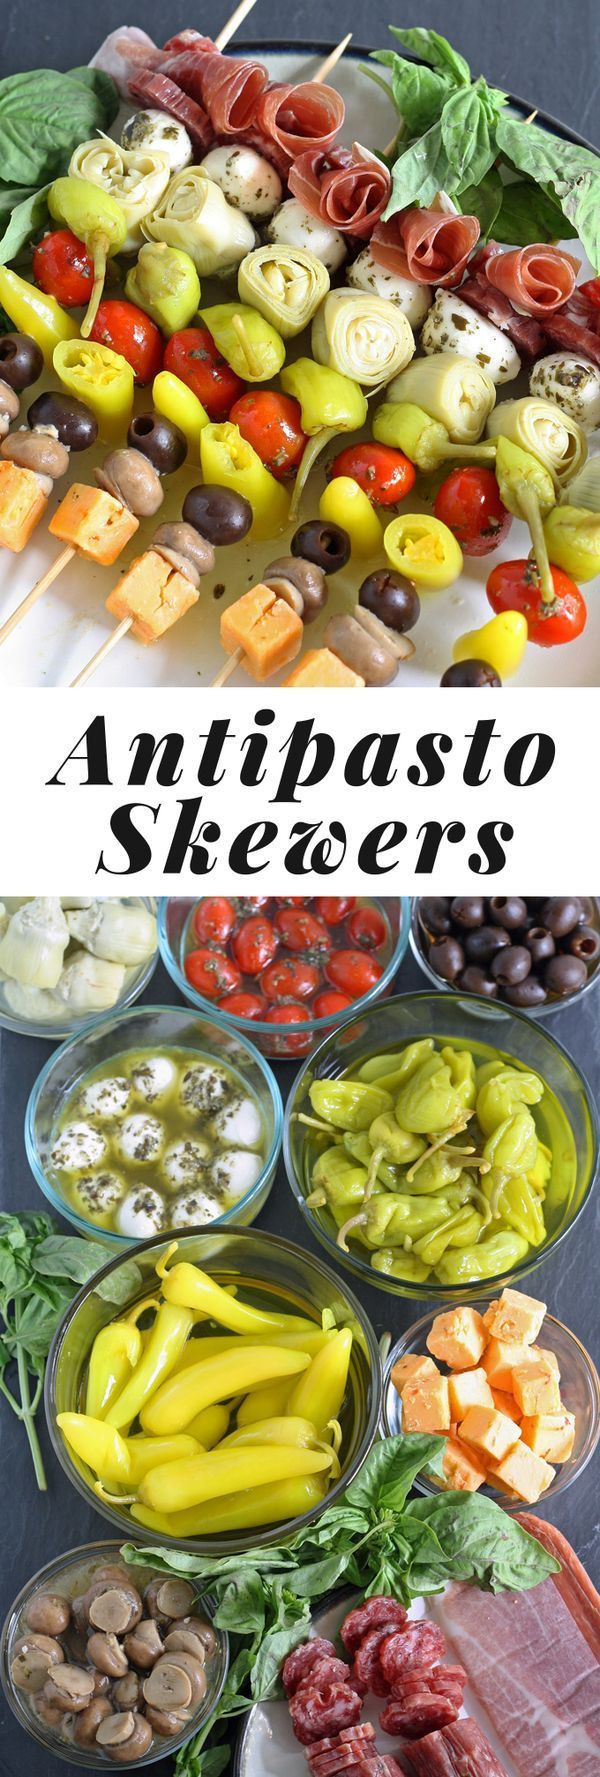 Appetizers For Italian Dinner  Best 25 Outdoor party appetizers ideas on Pinterest